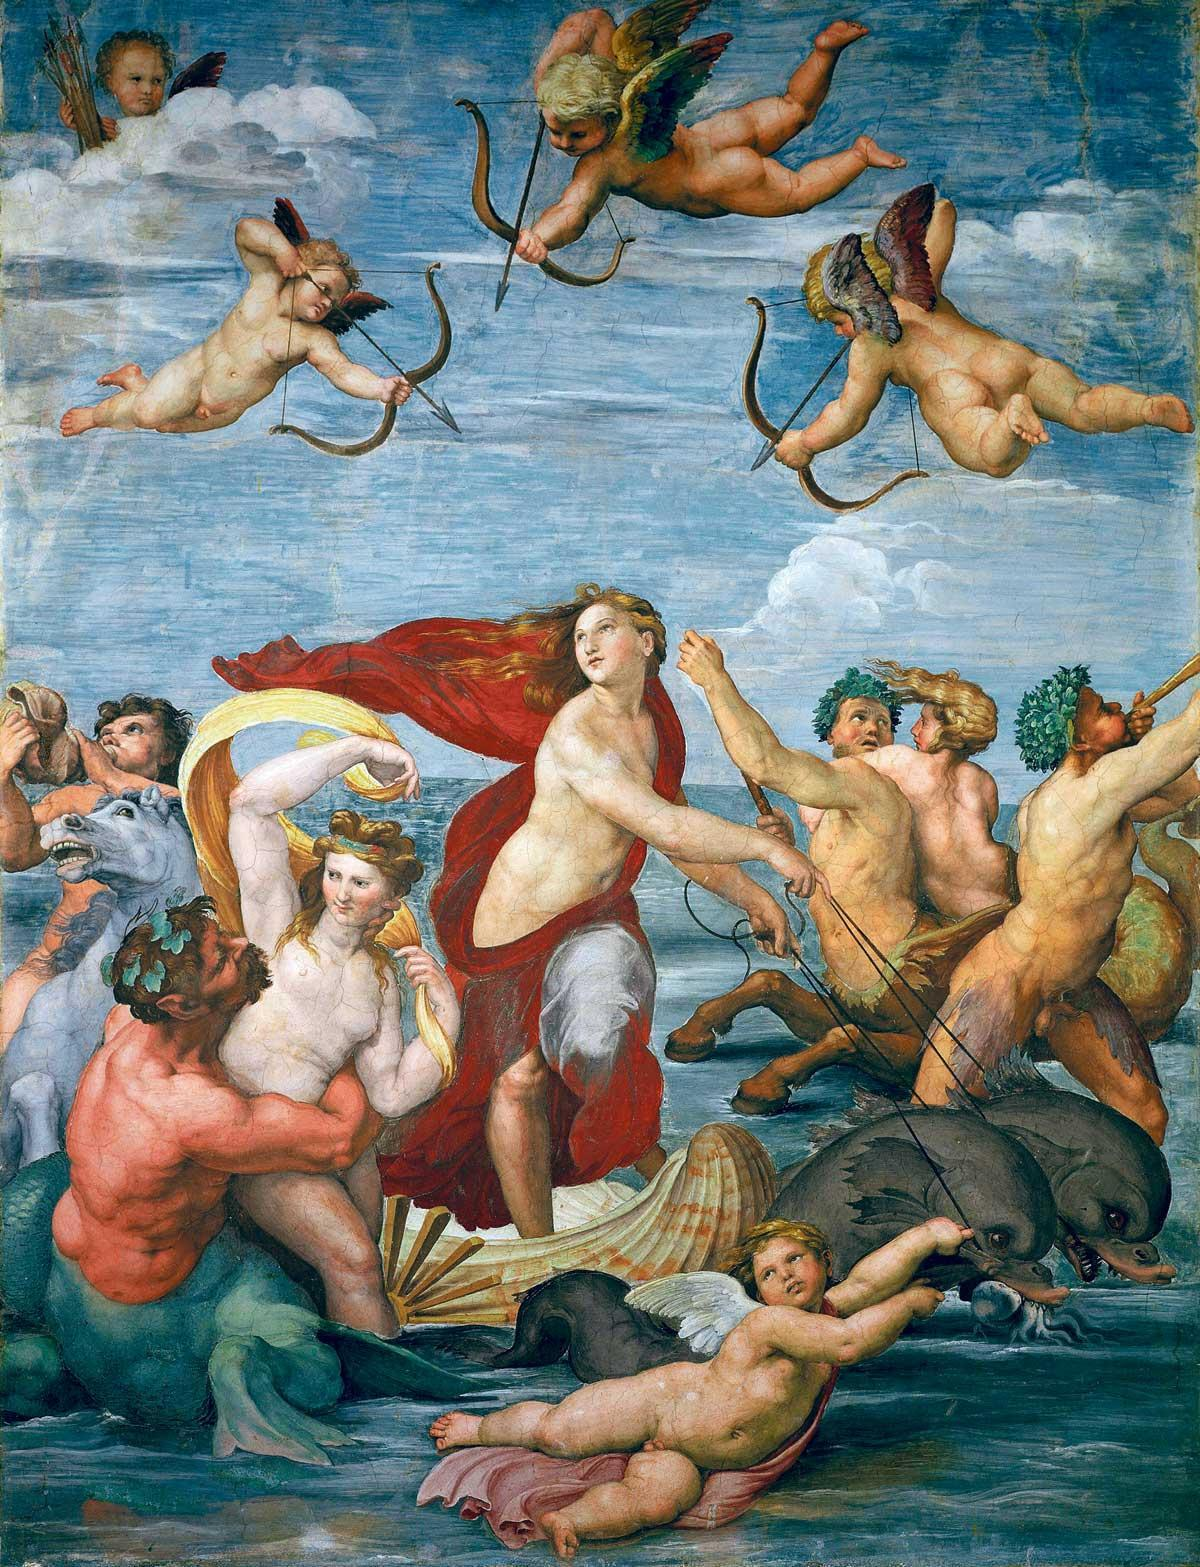 Triumph of Galatea, c.1512, by Raffaello Sanzio da Urbino (Raphael), Villa Farnesina, Rome © Getty Images.